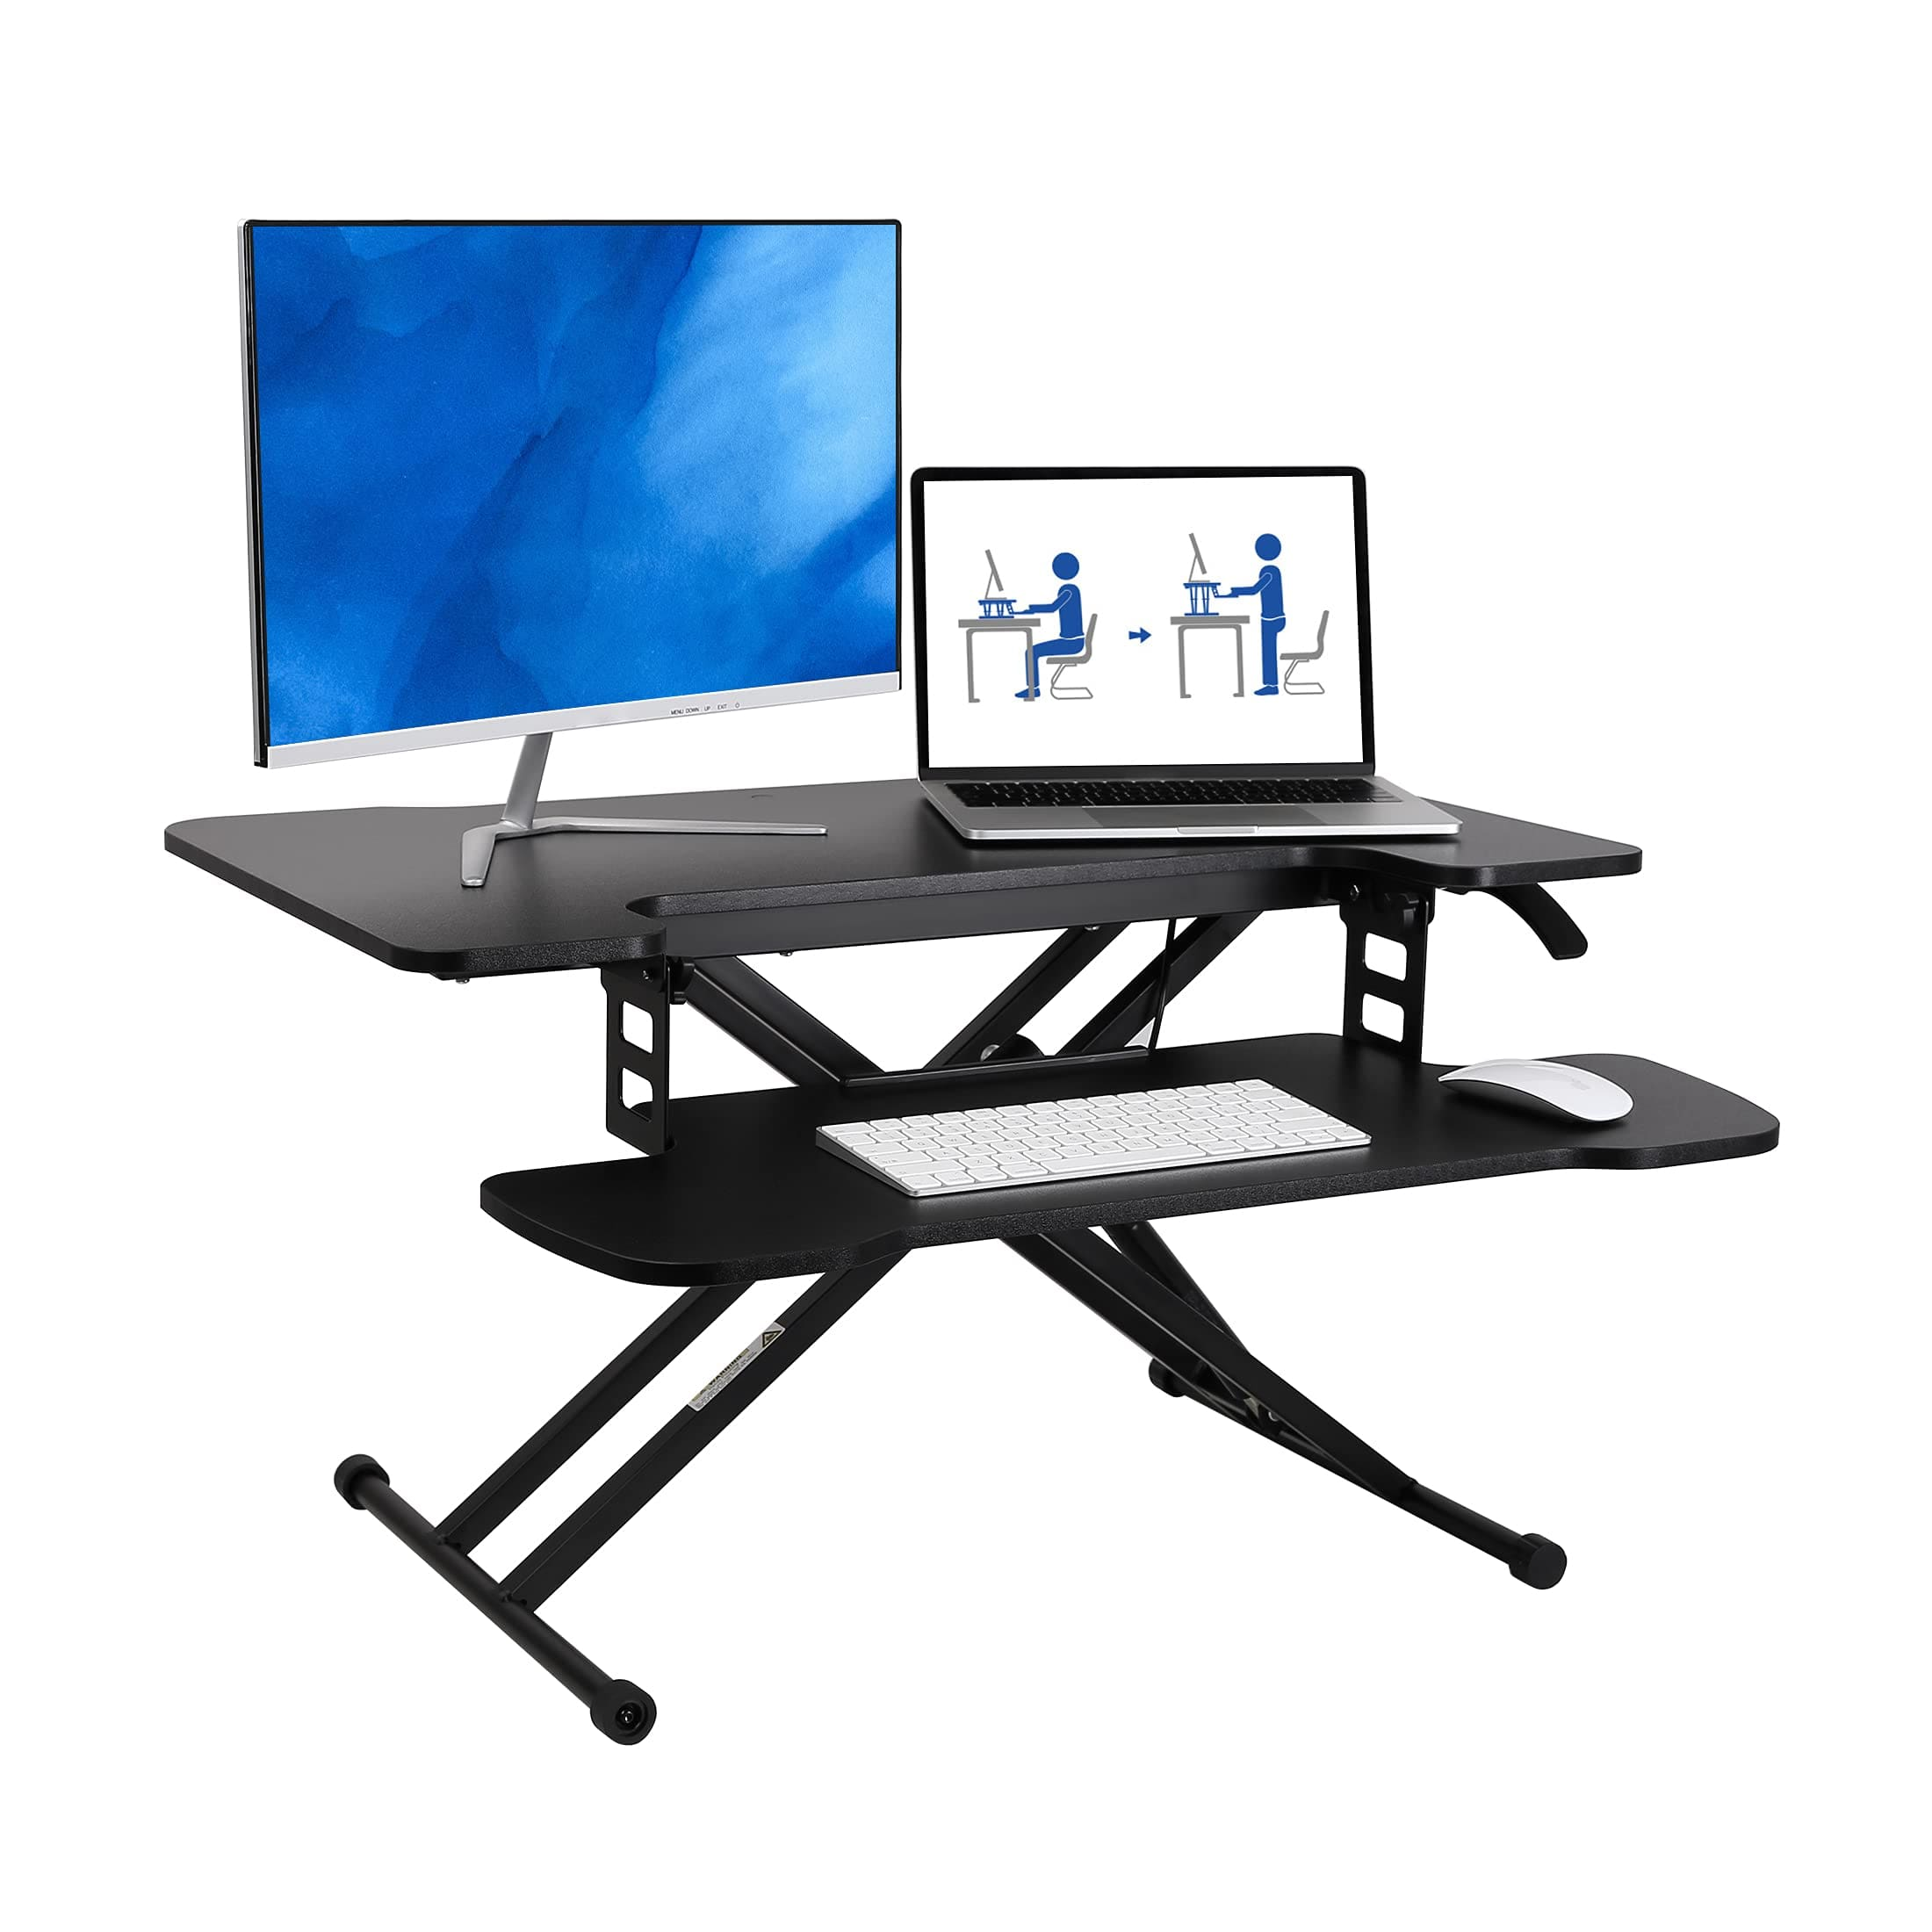 FLEXISPOT 31 inch Standing Desk Converter Height Adjustable $59.99 after $60 off coupon at Amazon